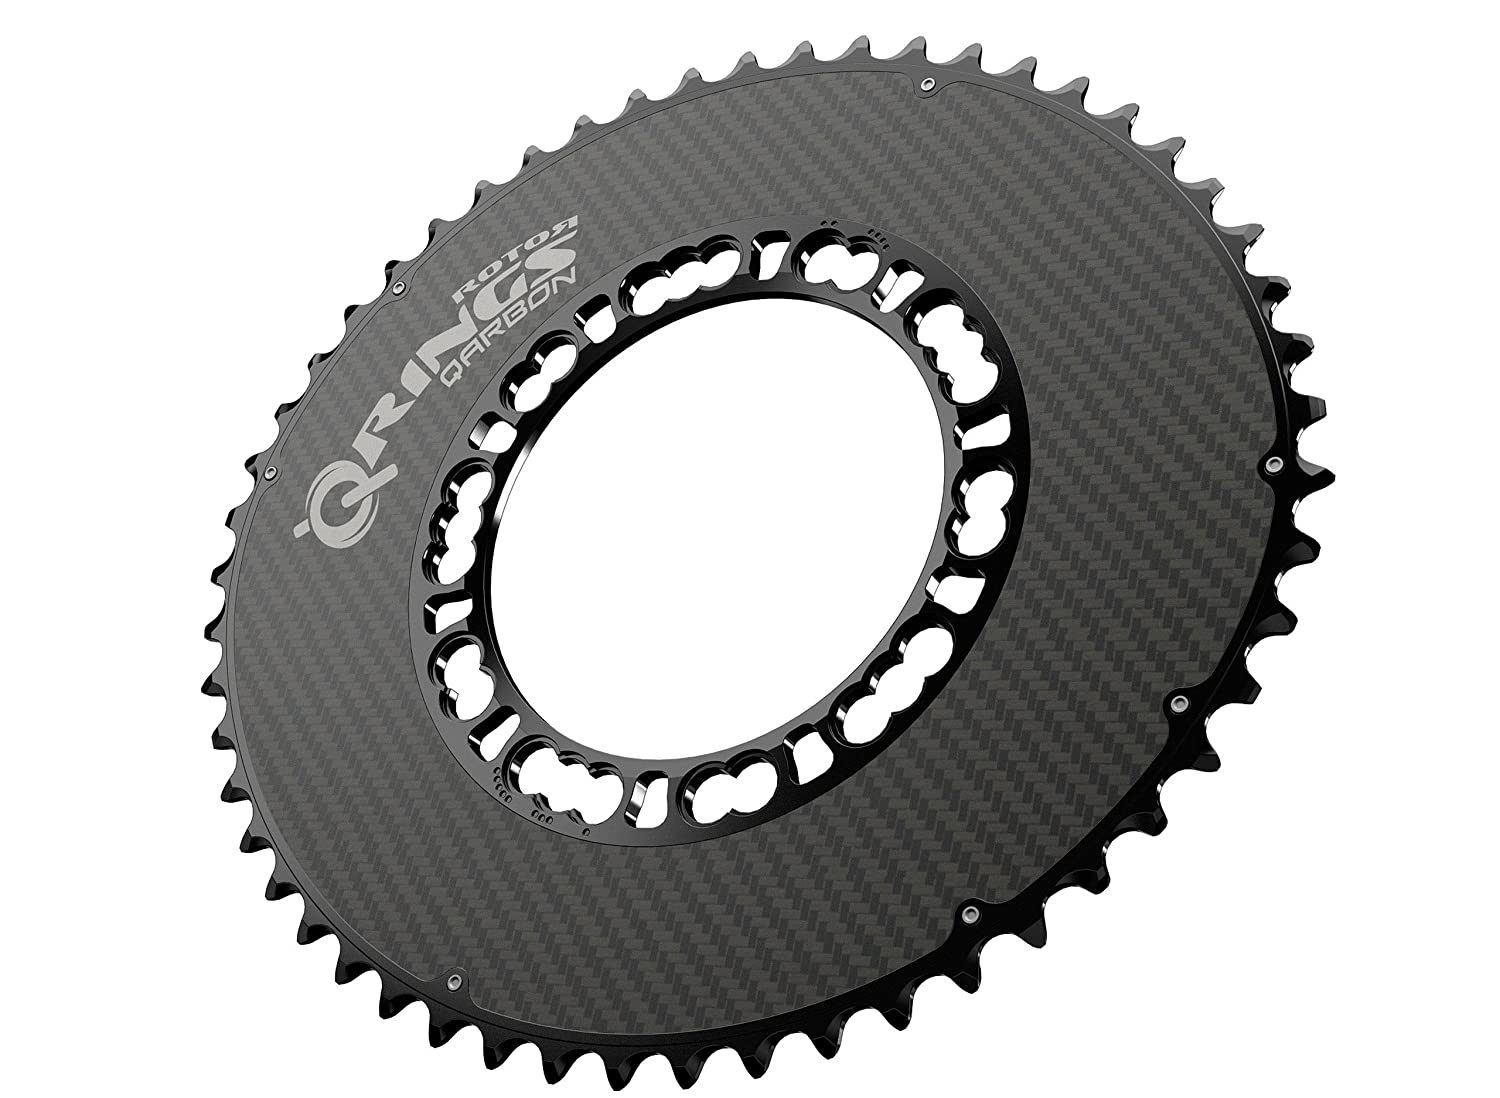 ROTOR(ローター) Q-Rings Qarbon AERO Road Carbon Chainring set Compact 110PCD [Outer/Inner: 53-50T / 36-34T] [並行輸入品] B06Y1H28NY 52T-Outer